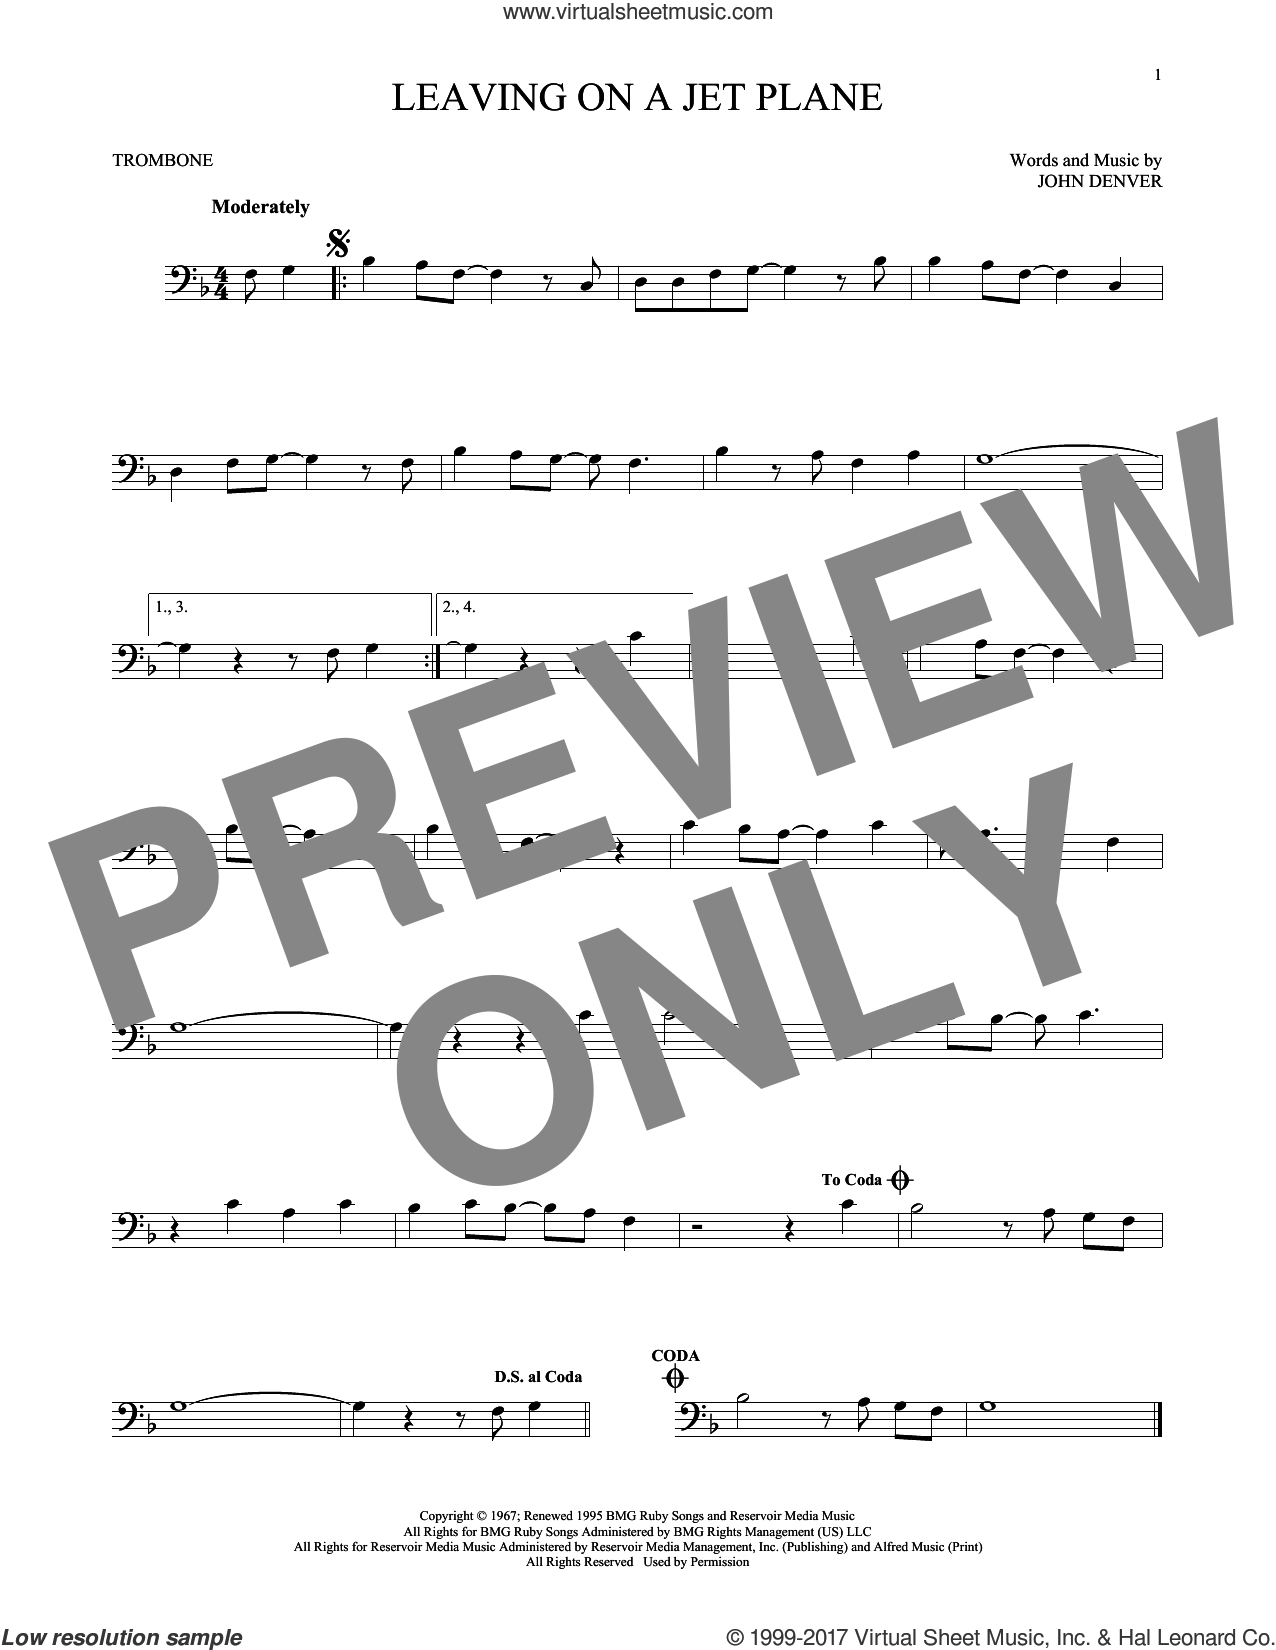 Leaving On A Jet Plane sheet music for trombone solo by John Denver and Peter, Paul & Mary, intermediate skill level